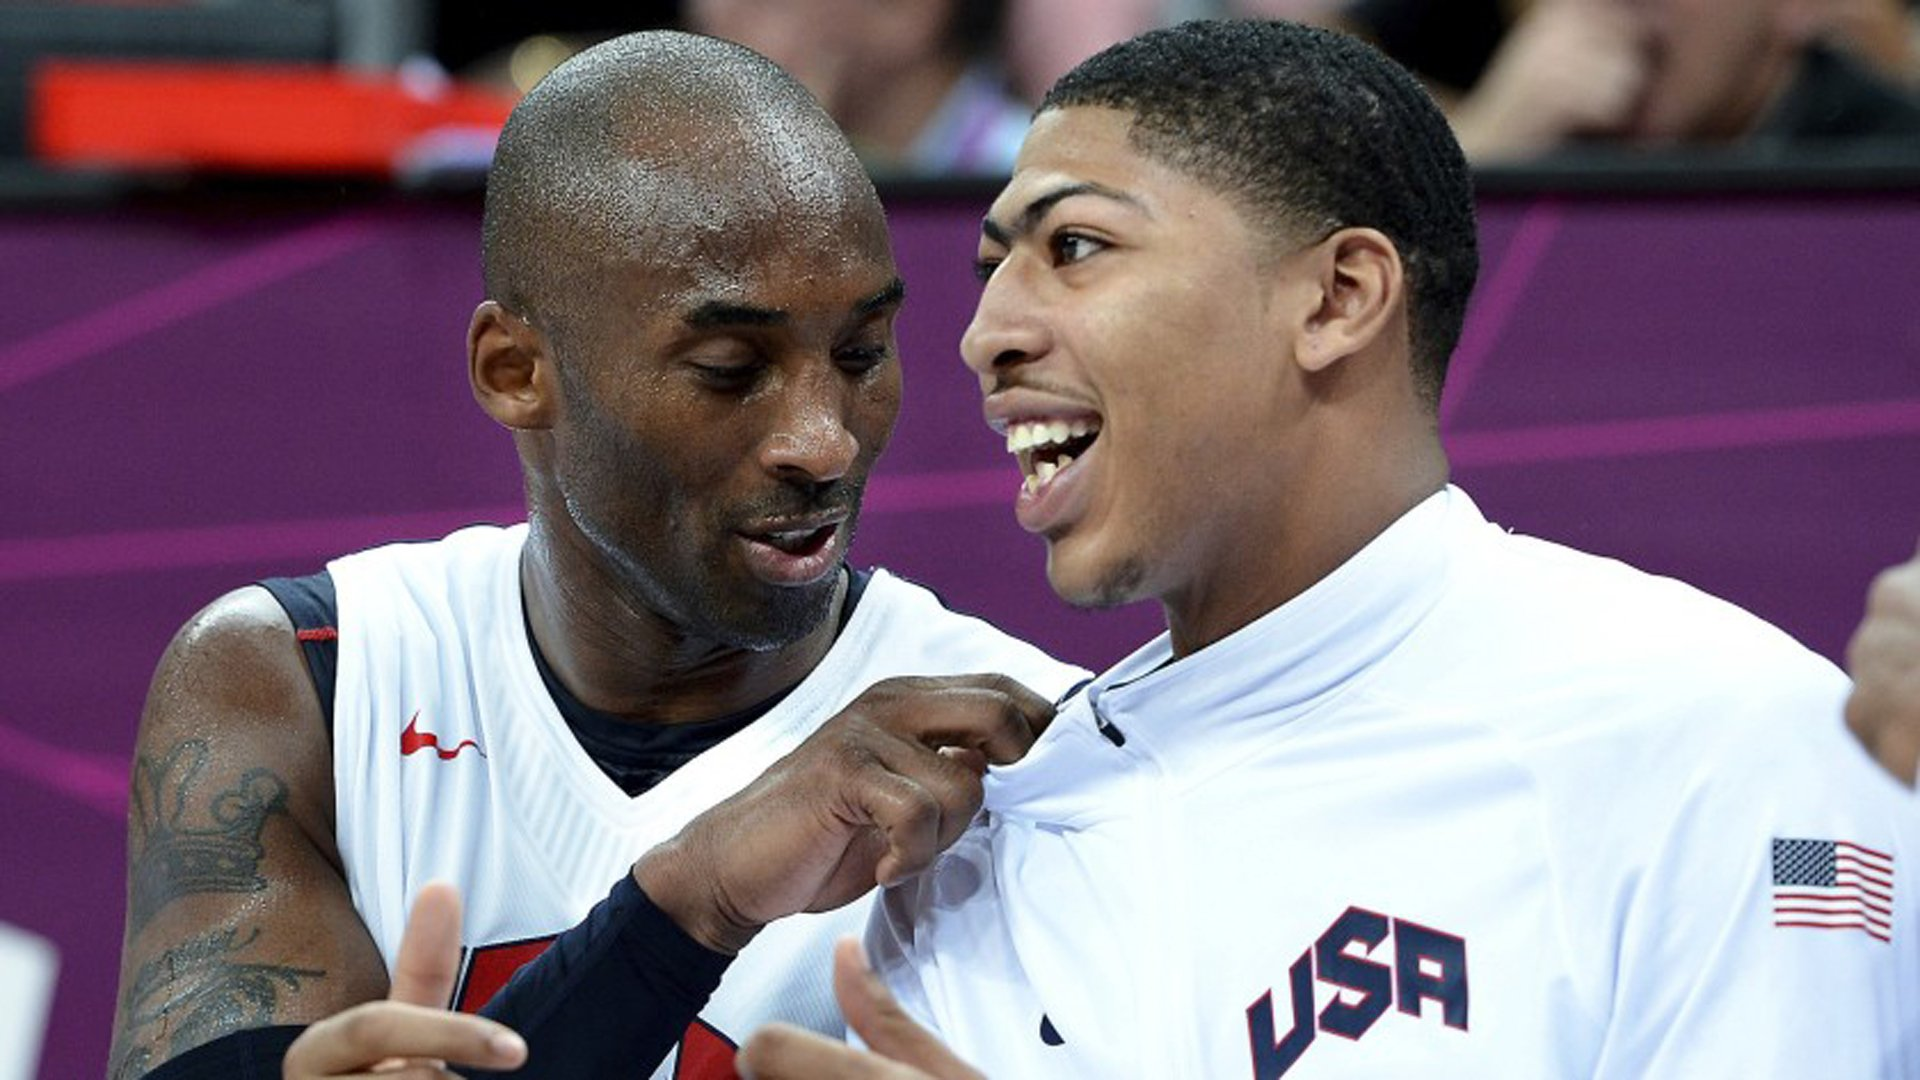 Kobe Bryant, left, and Anthony Davis talk while sitting on the bench during a game at the 2012 London Olympics.(Credit: Wally Skalij / Los Angeles Times)